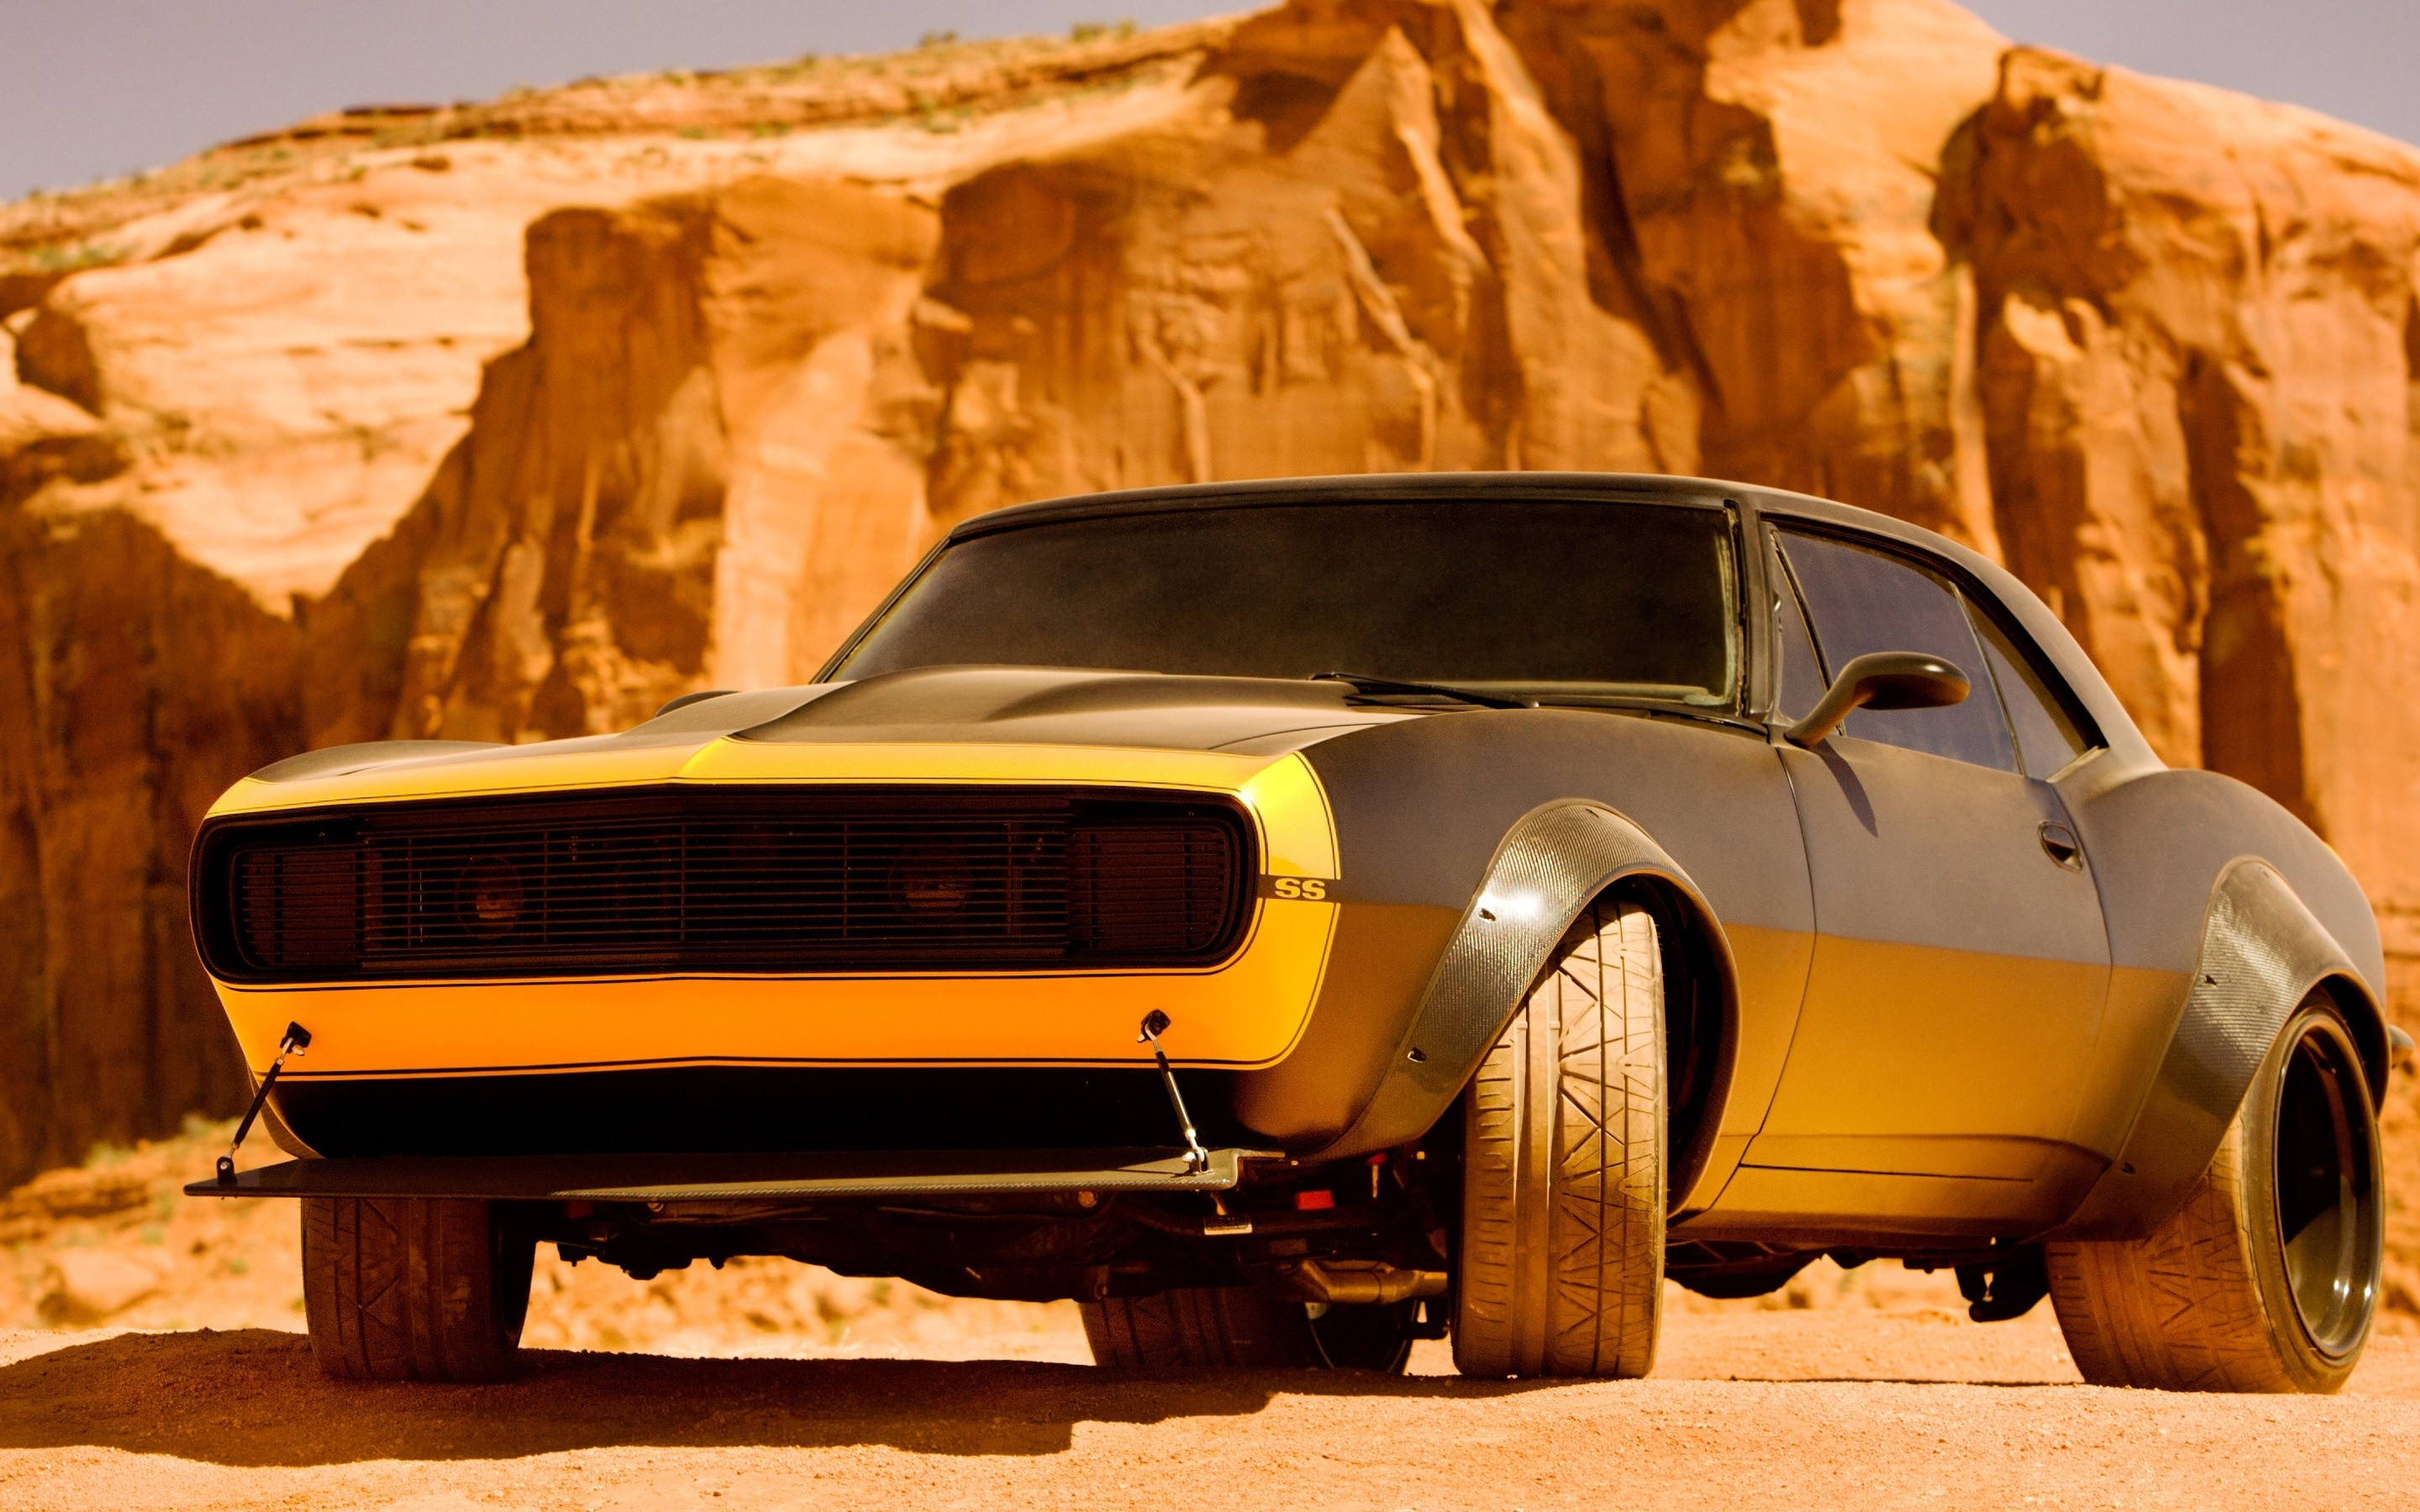 Cool Muscle Car Wallpapers 15 with Cool Muscle Car Wallpapers